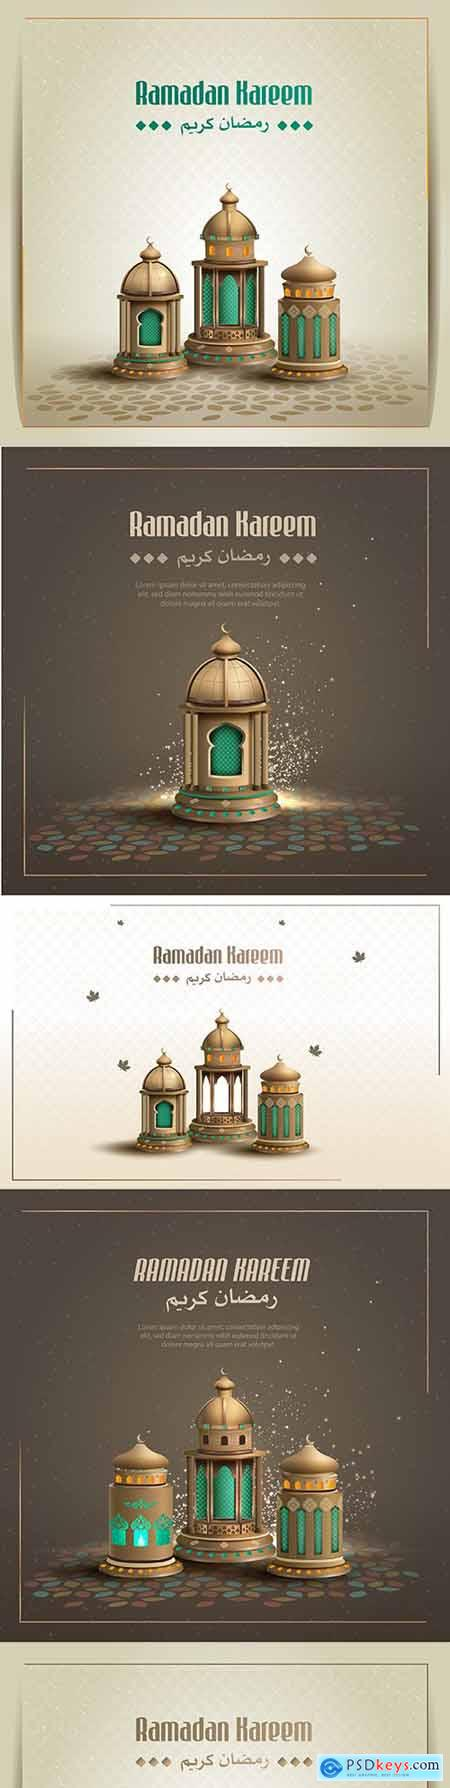 Ramadan Kareem Islamic design greeting with beautiful lantern